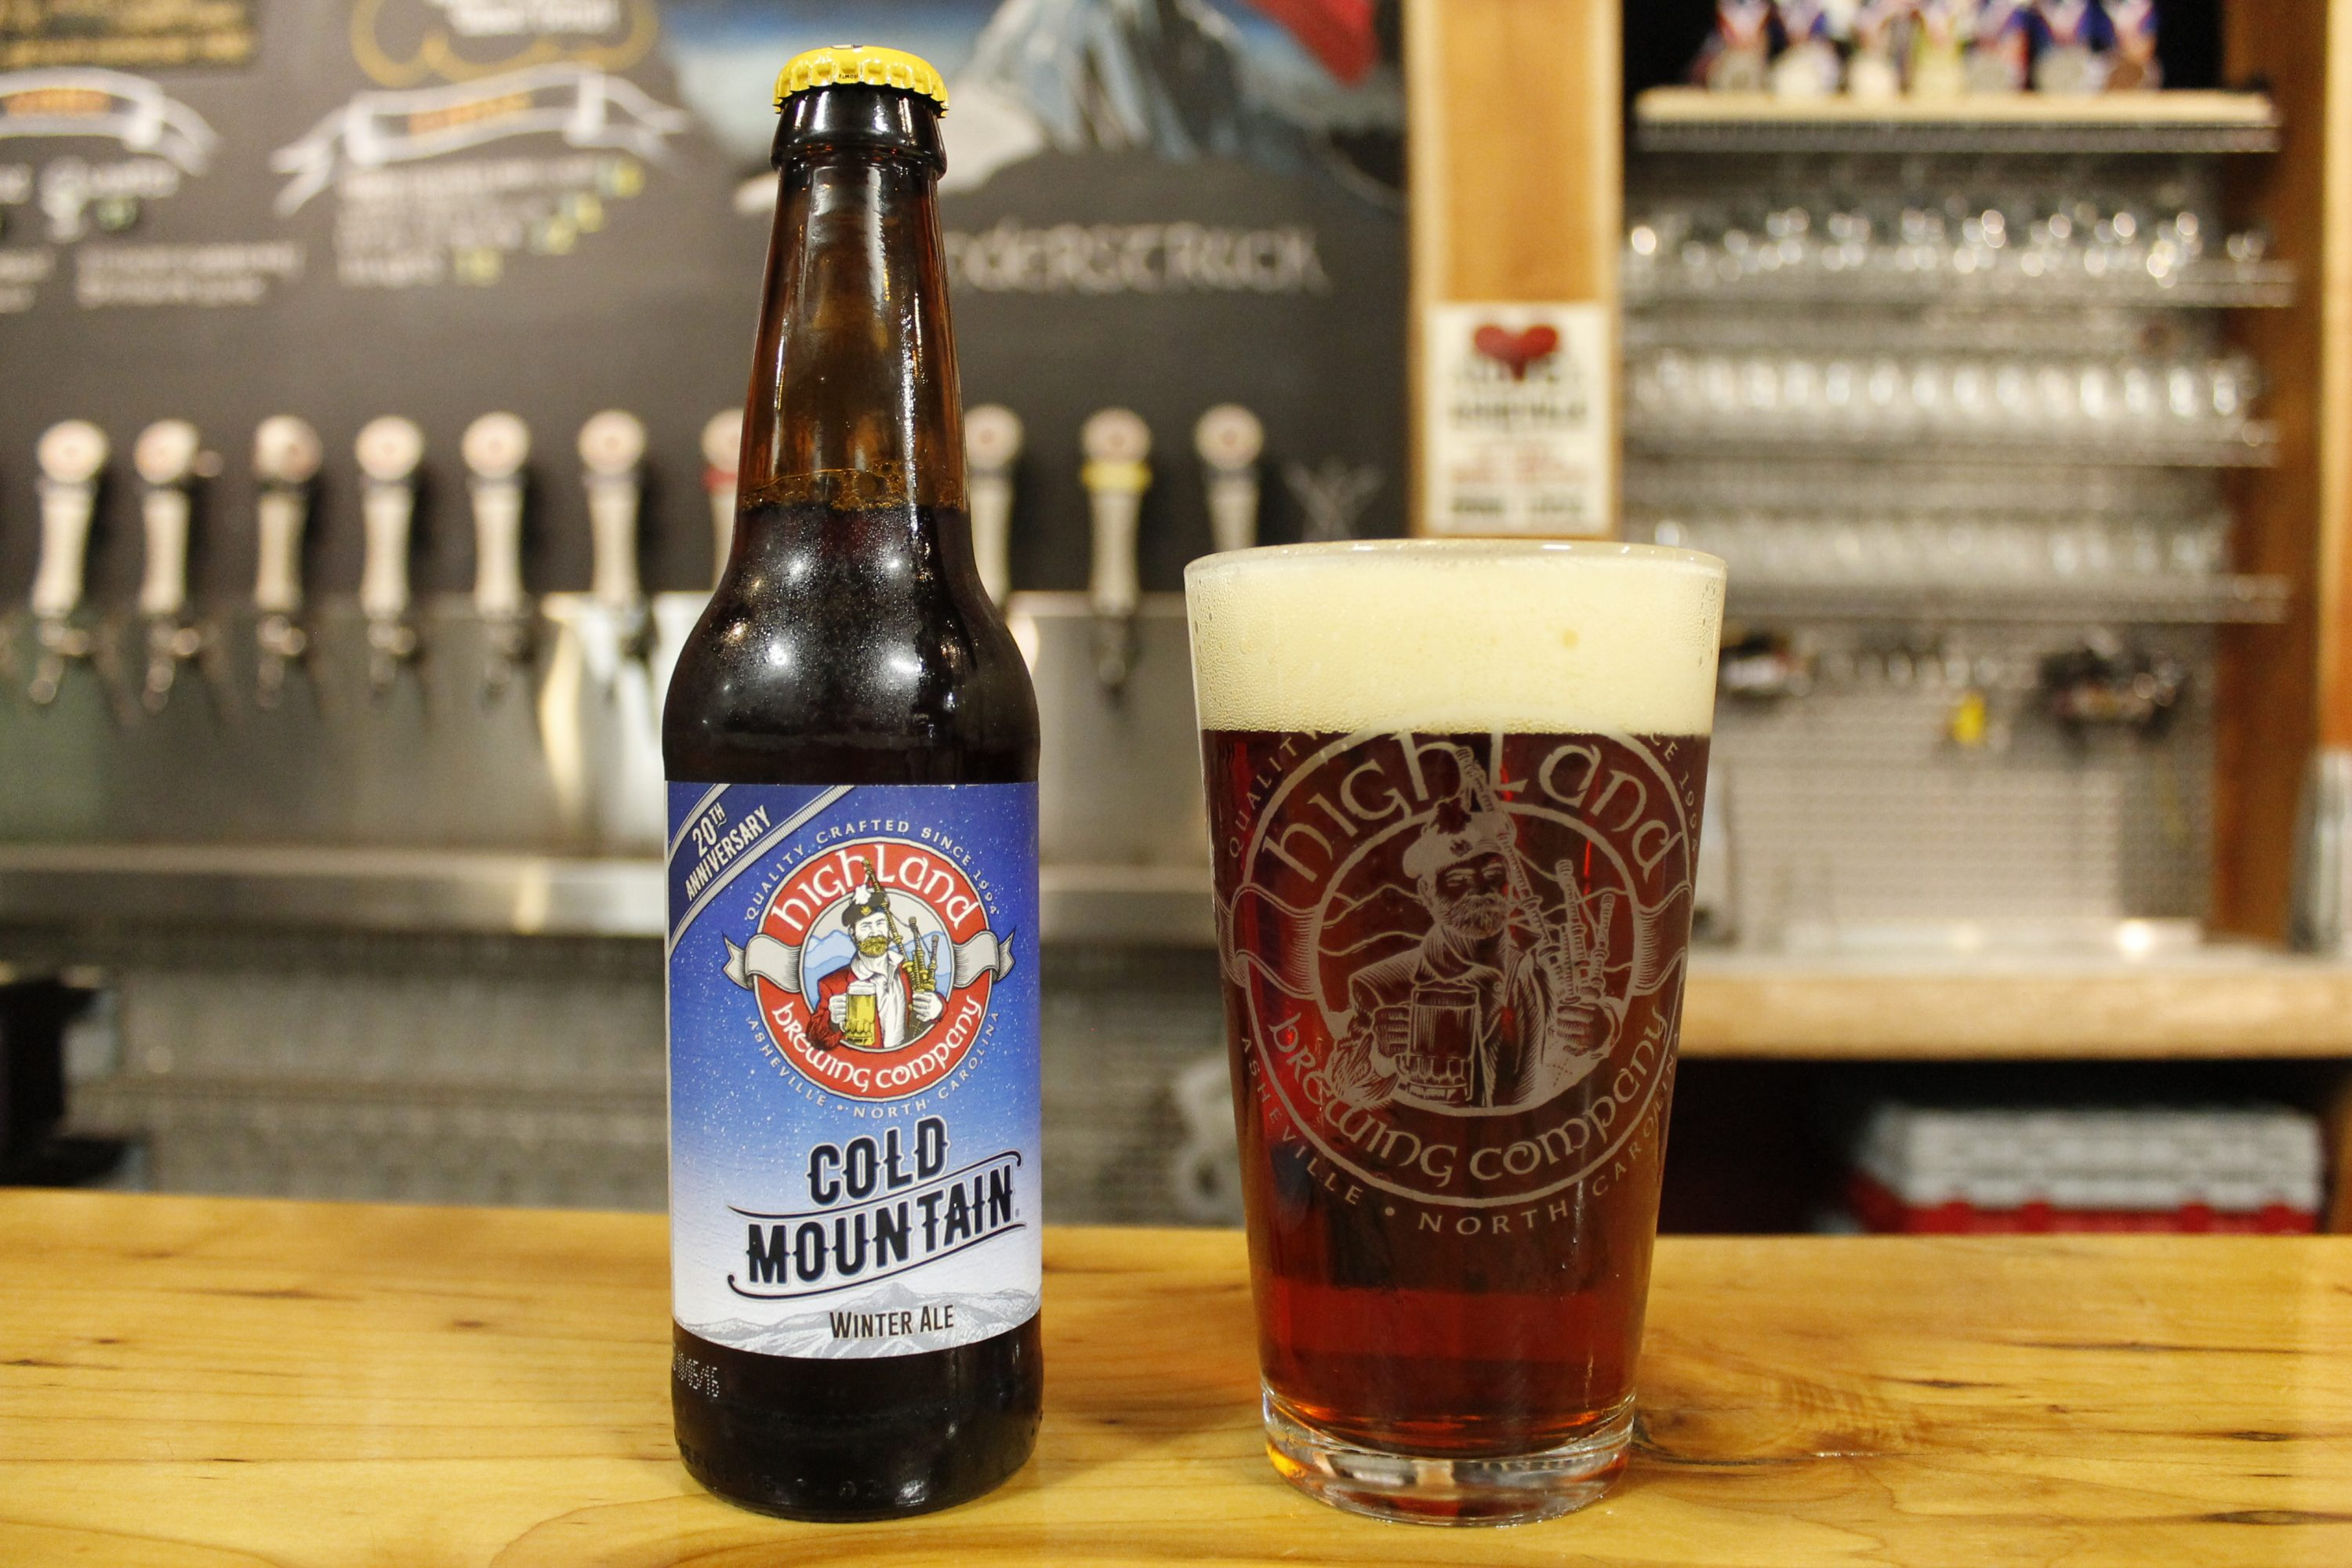 The 20th edition of Cold Mountain Winter Ale